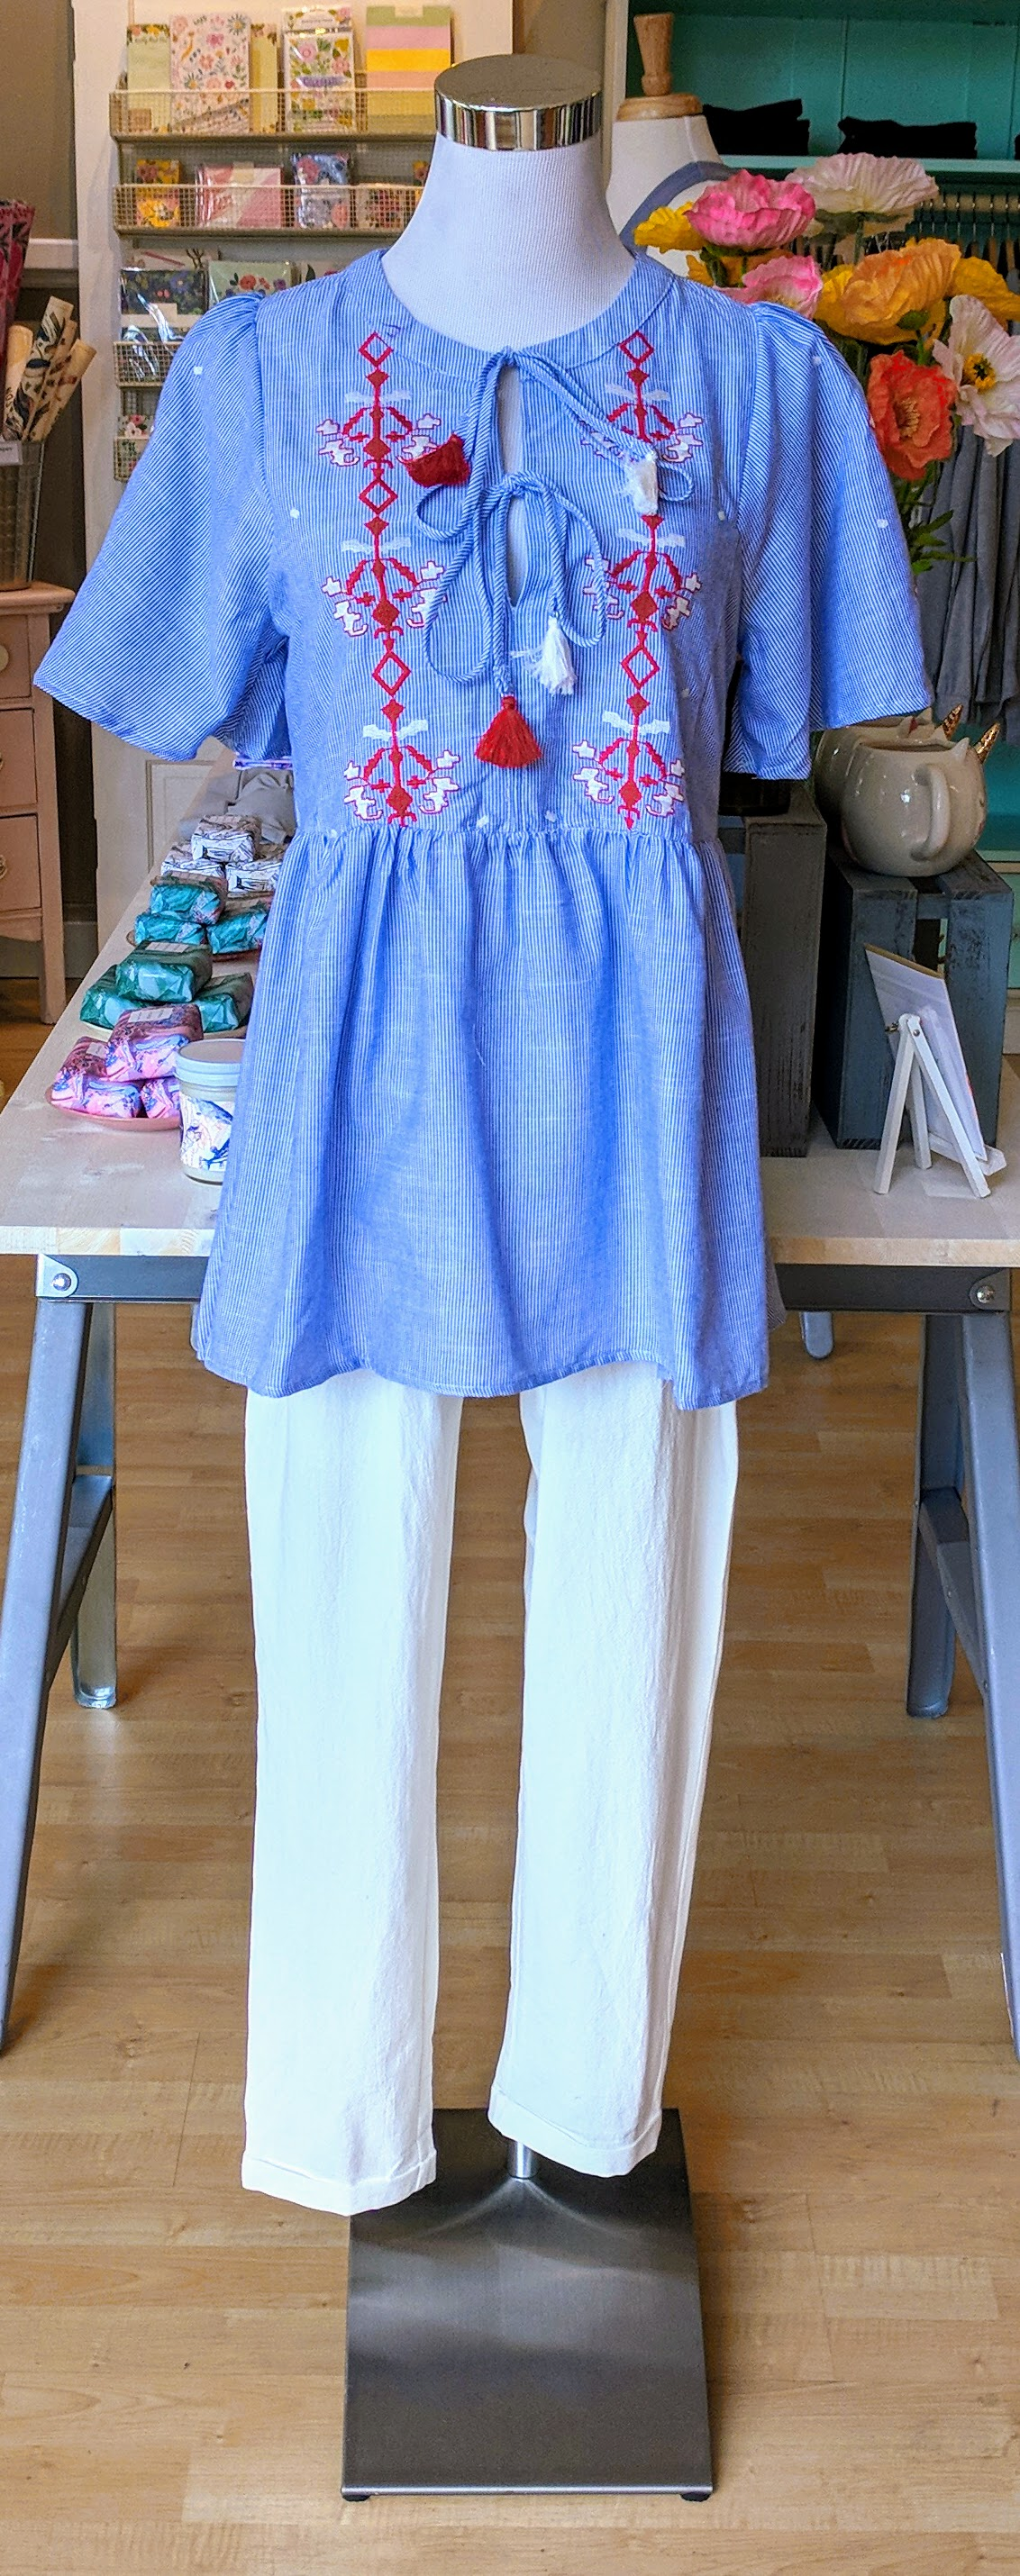 Blue and red embroidered baby doll top with tie detail on front.